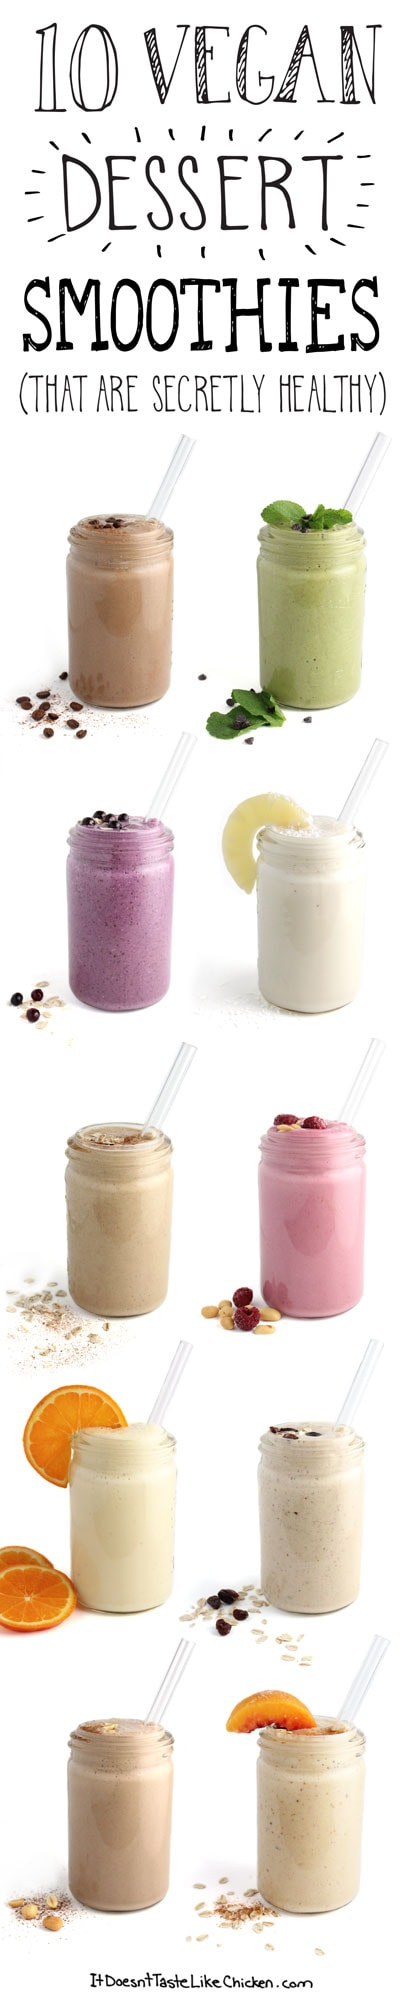 10 Vegan Dessert Smoothies (that are secretly healthy). Some of the most popular vegan recipes of 2015!